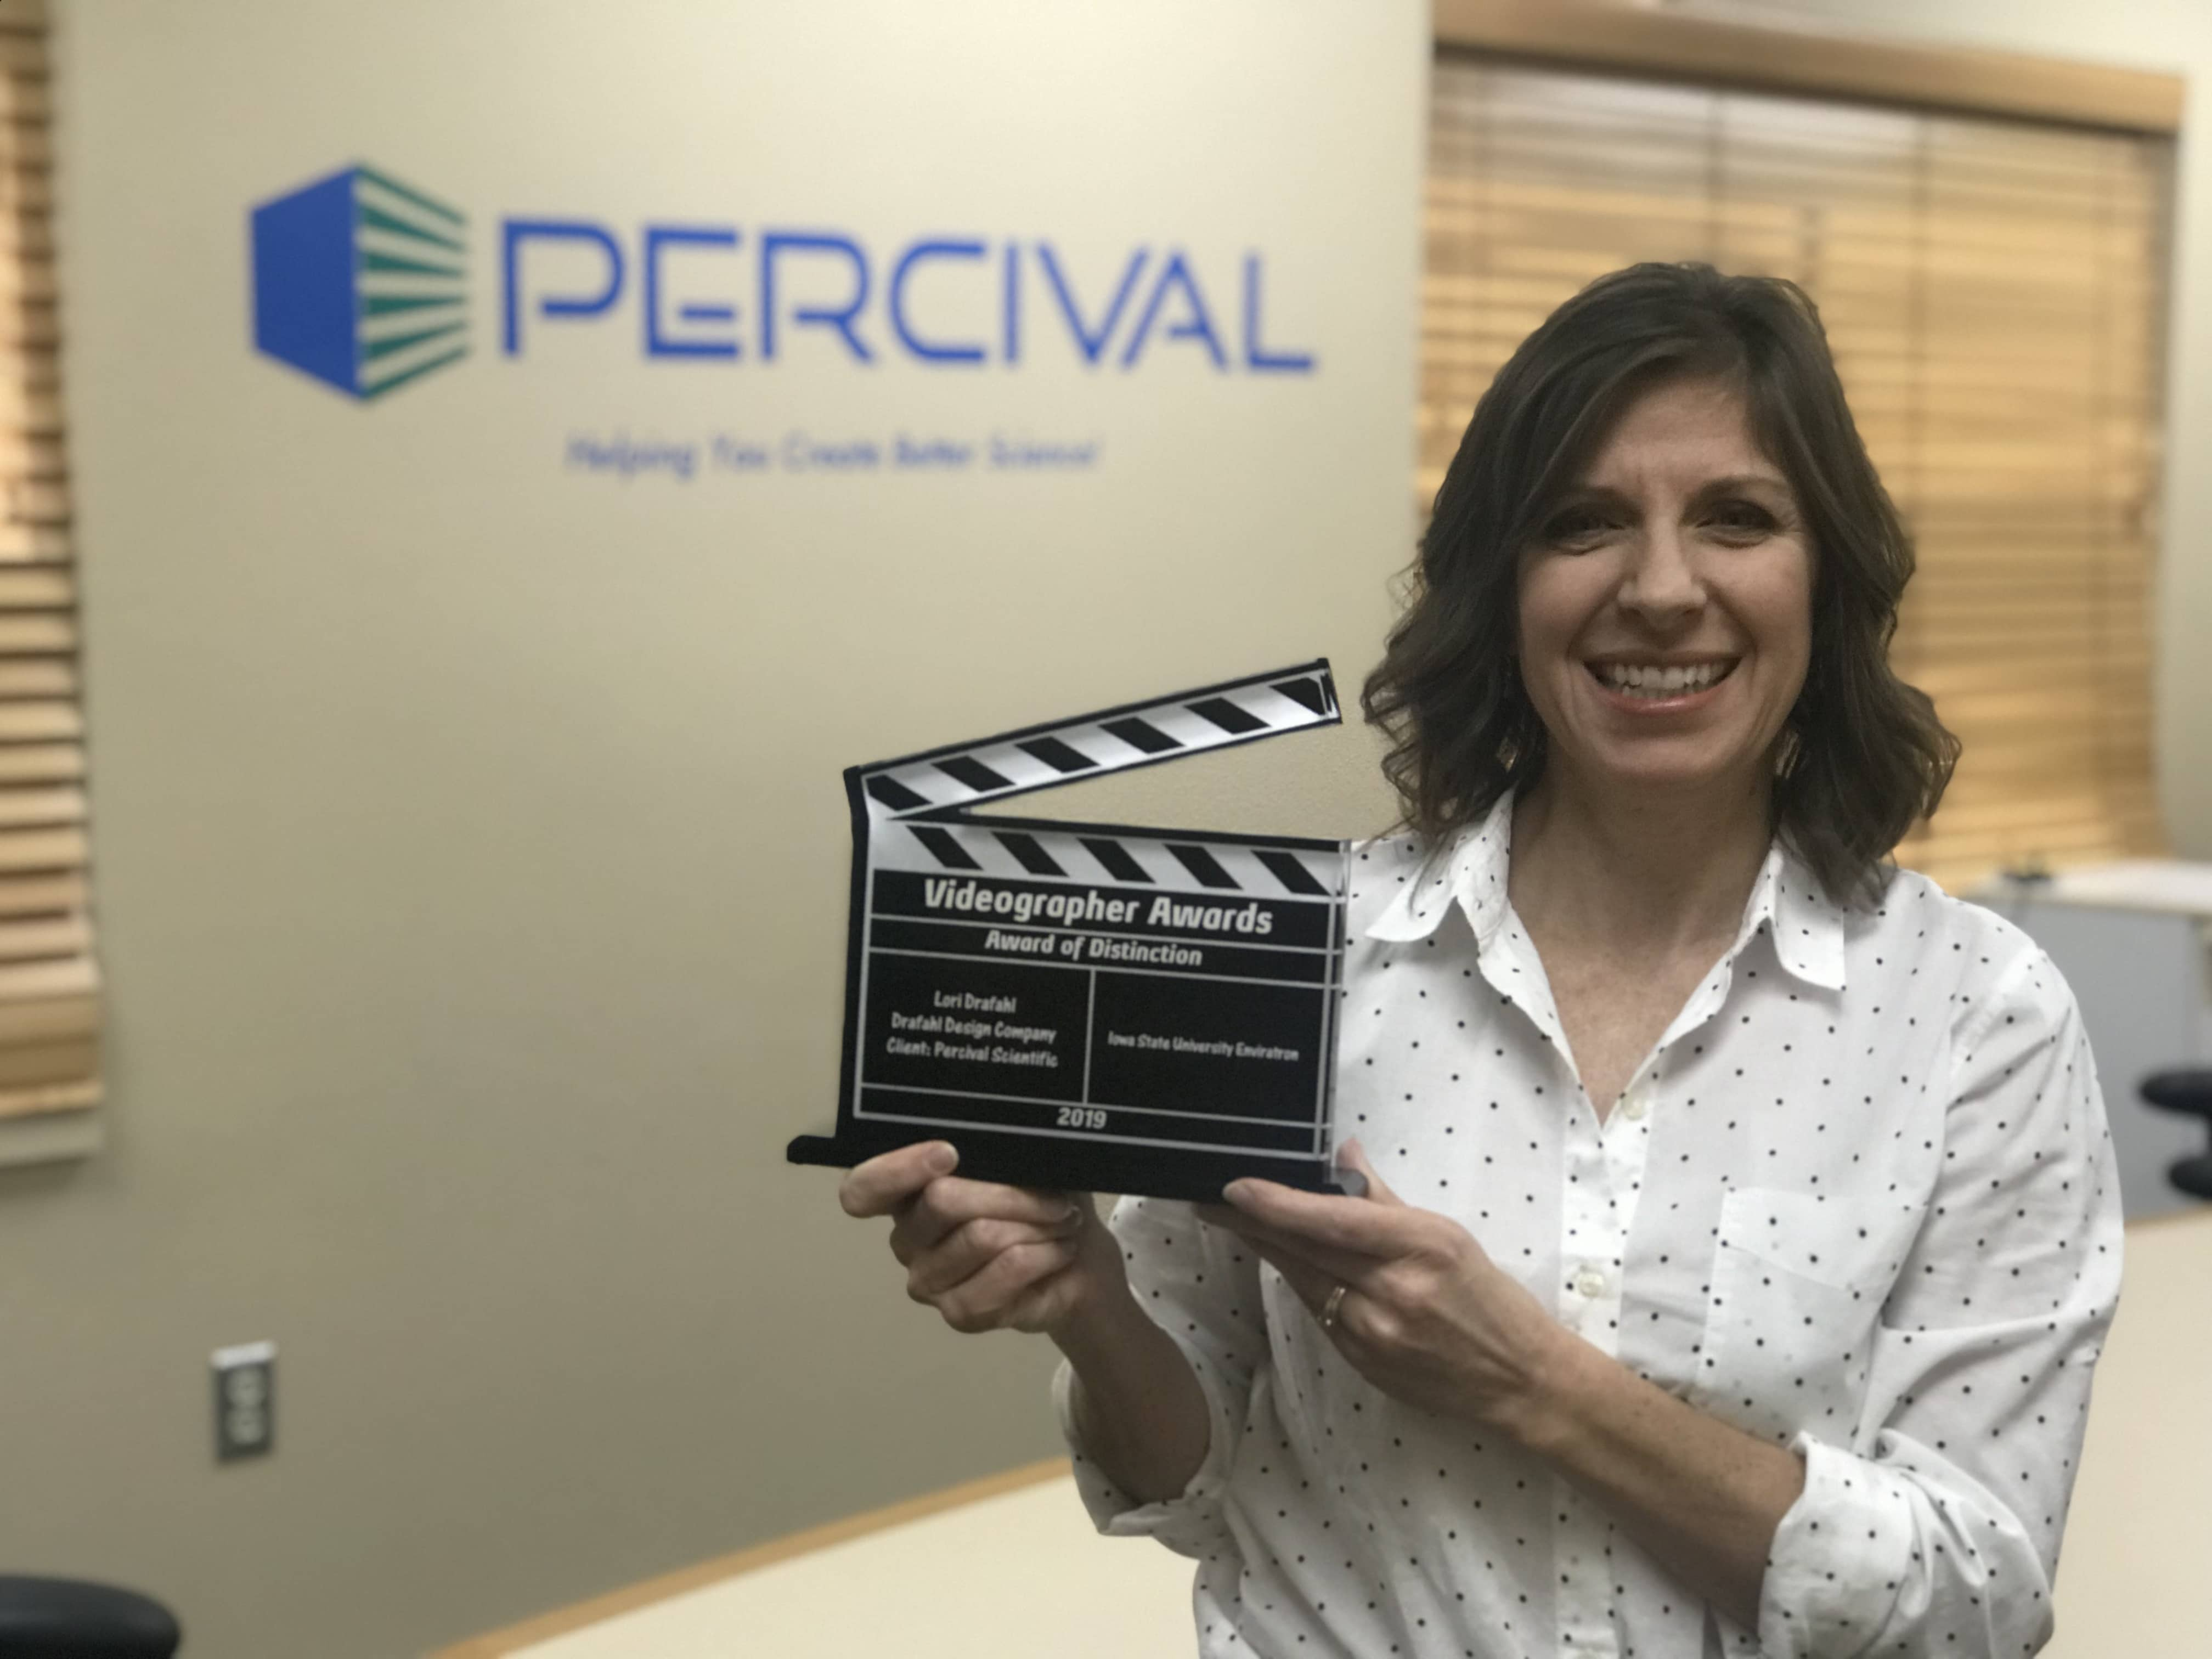 Climate Change Project Wins Video Award